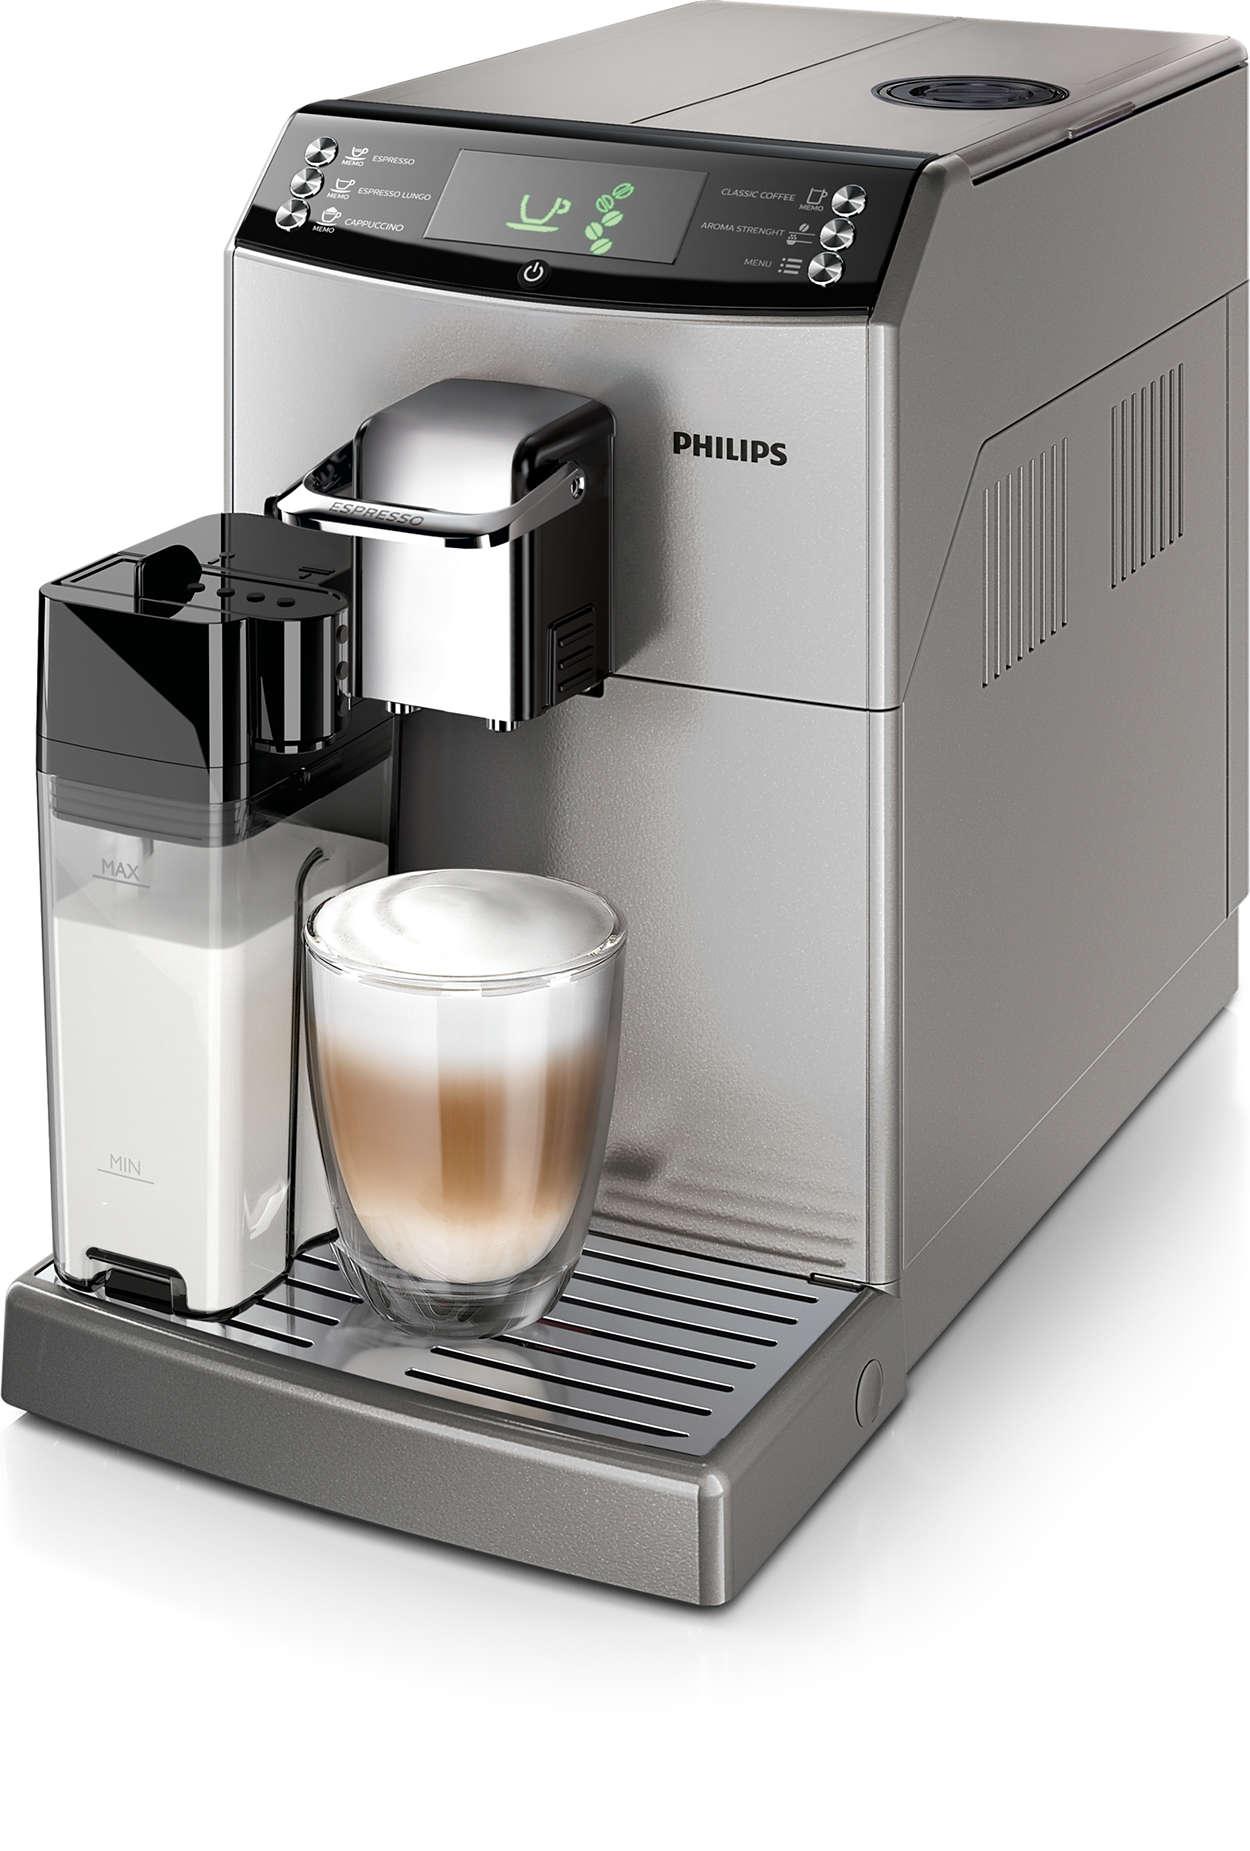 Philips Espresso 4000 Review Life Just Got More Delicious